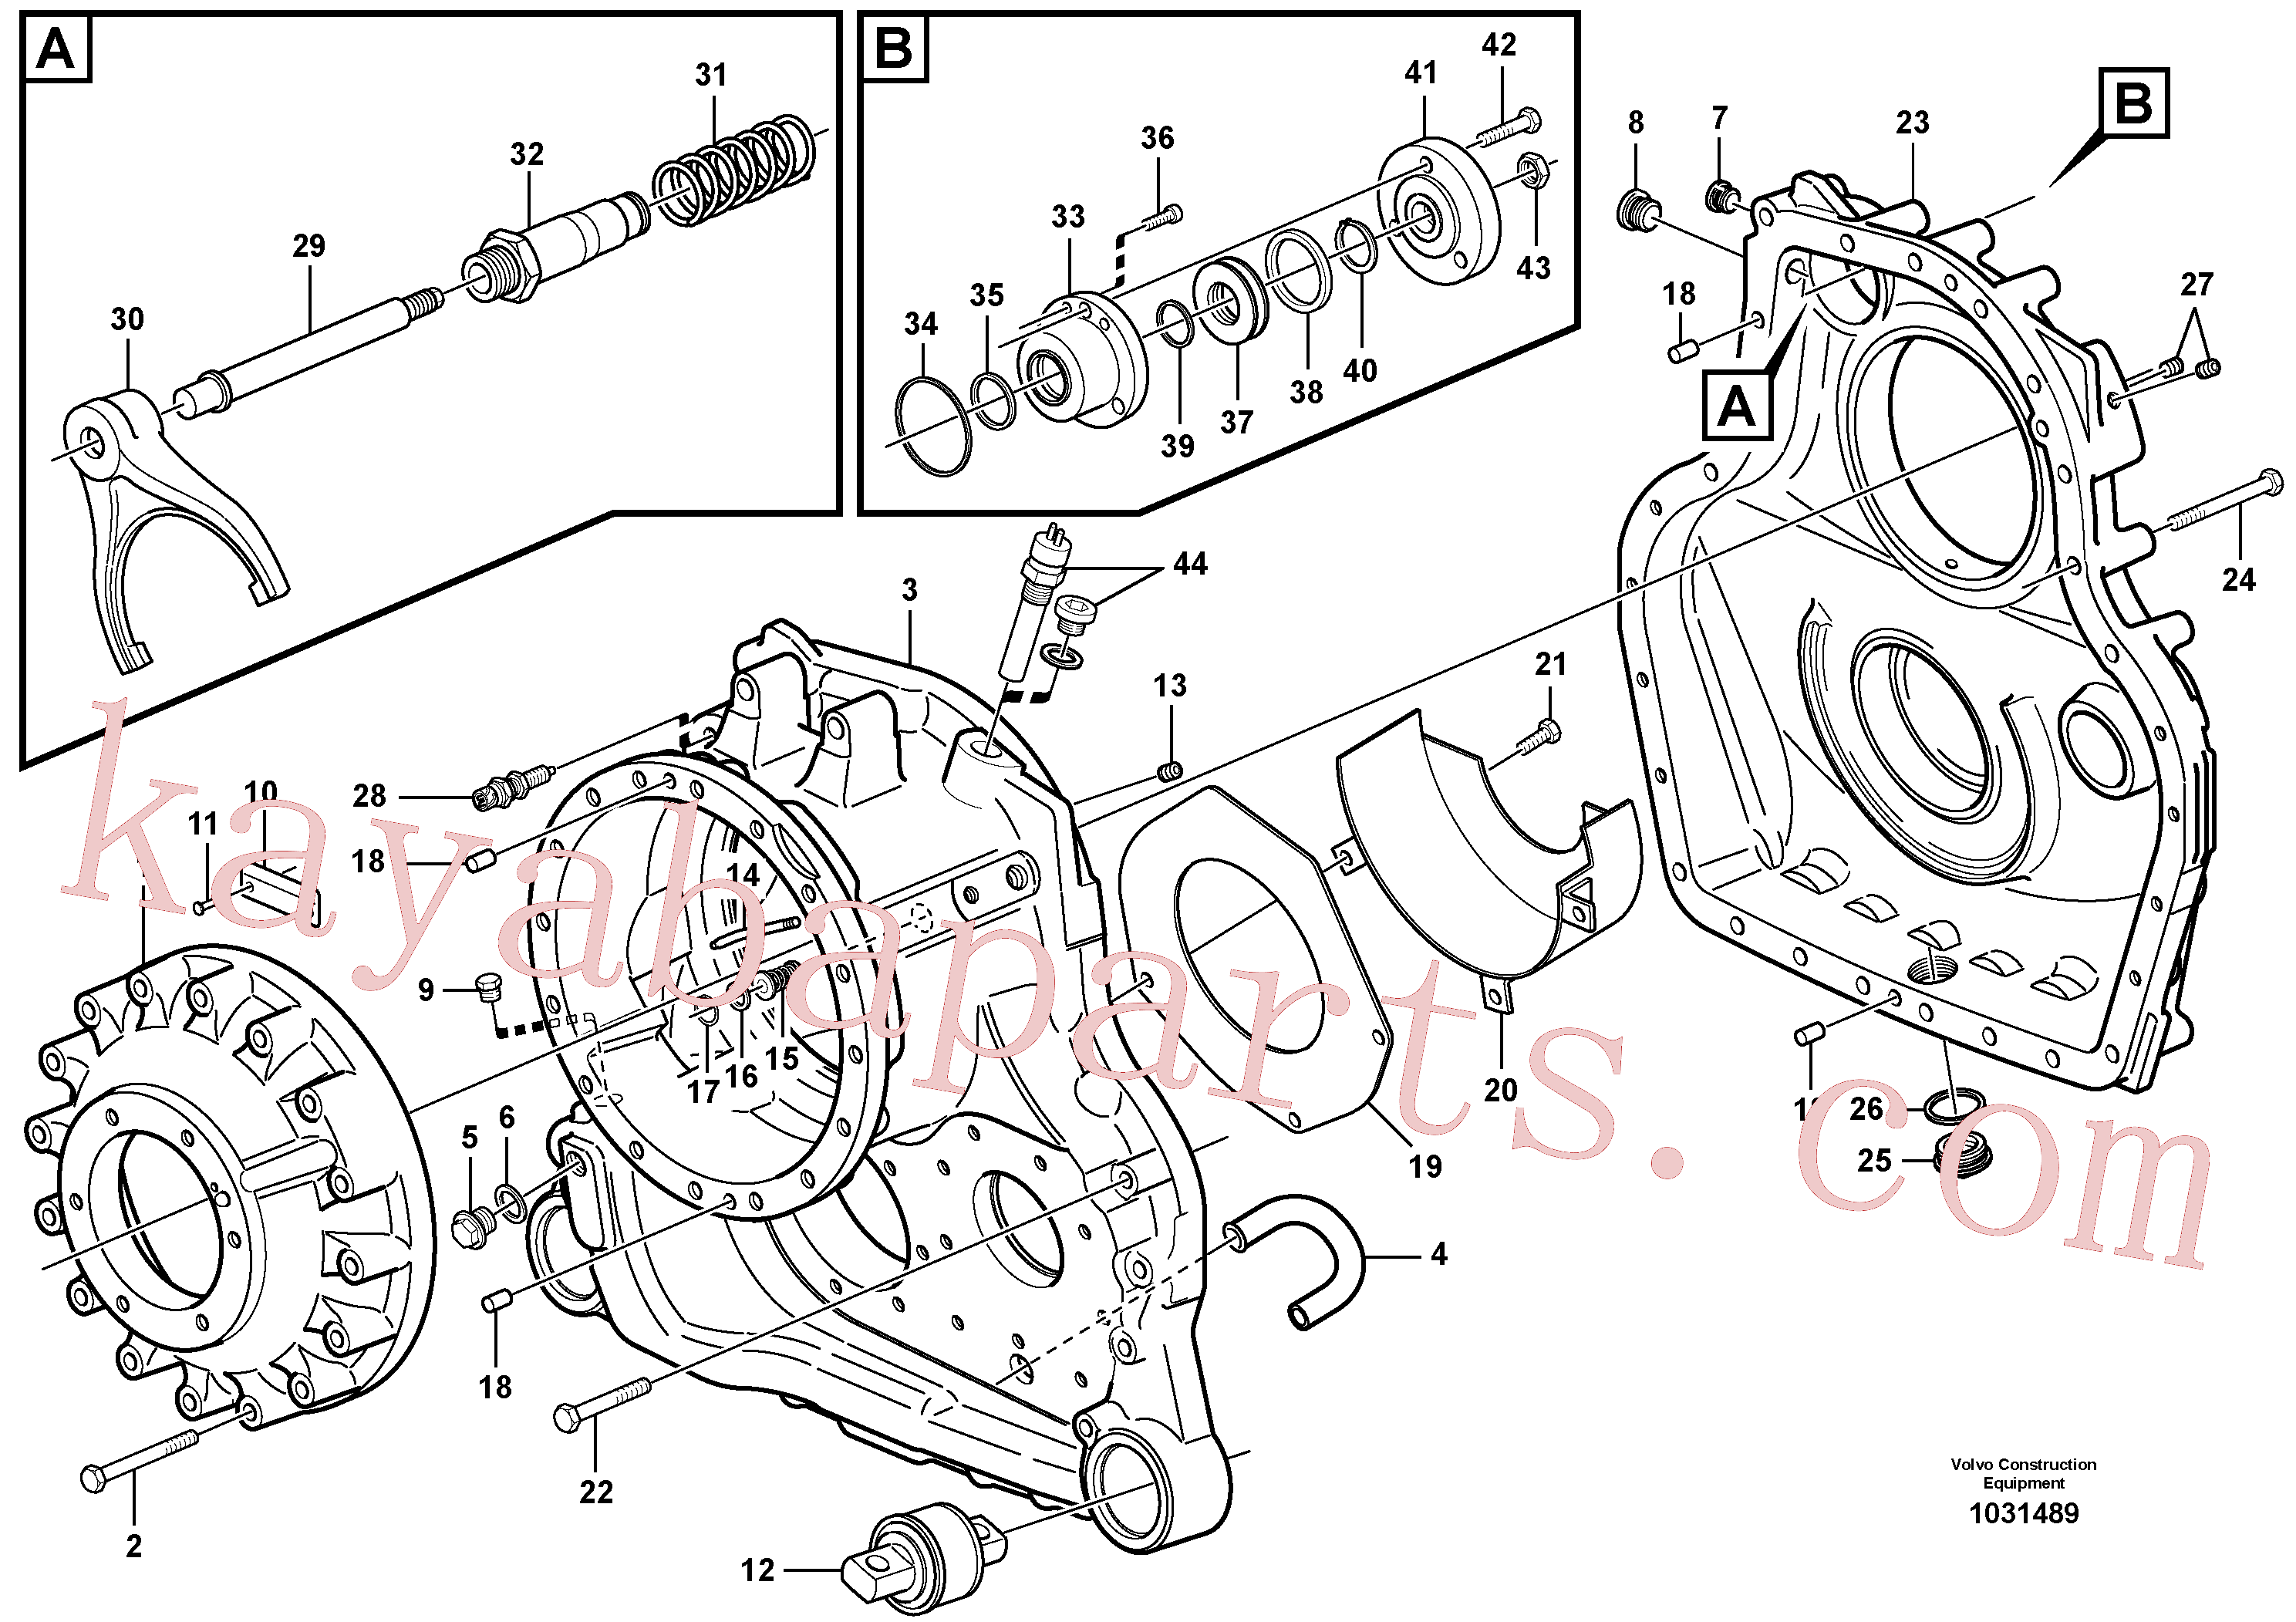 VOE990830 for Volvo Transfer gear box(1031489 assembly)